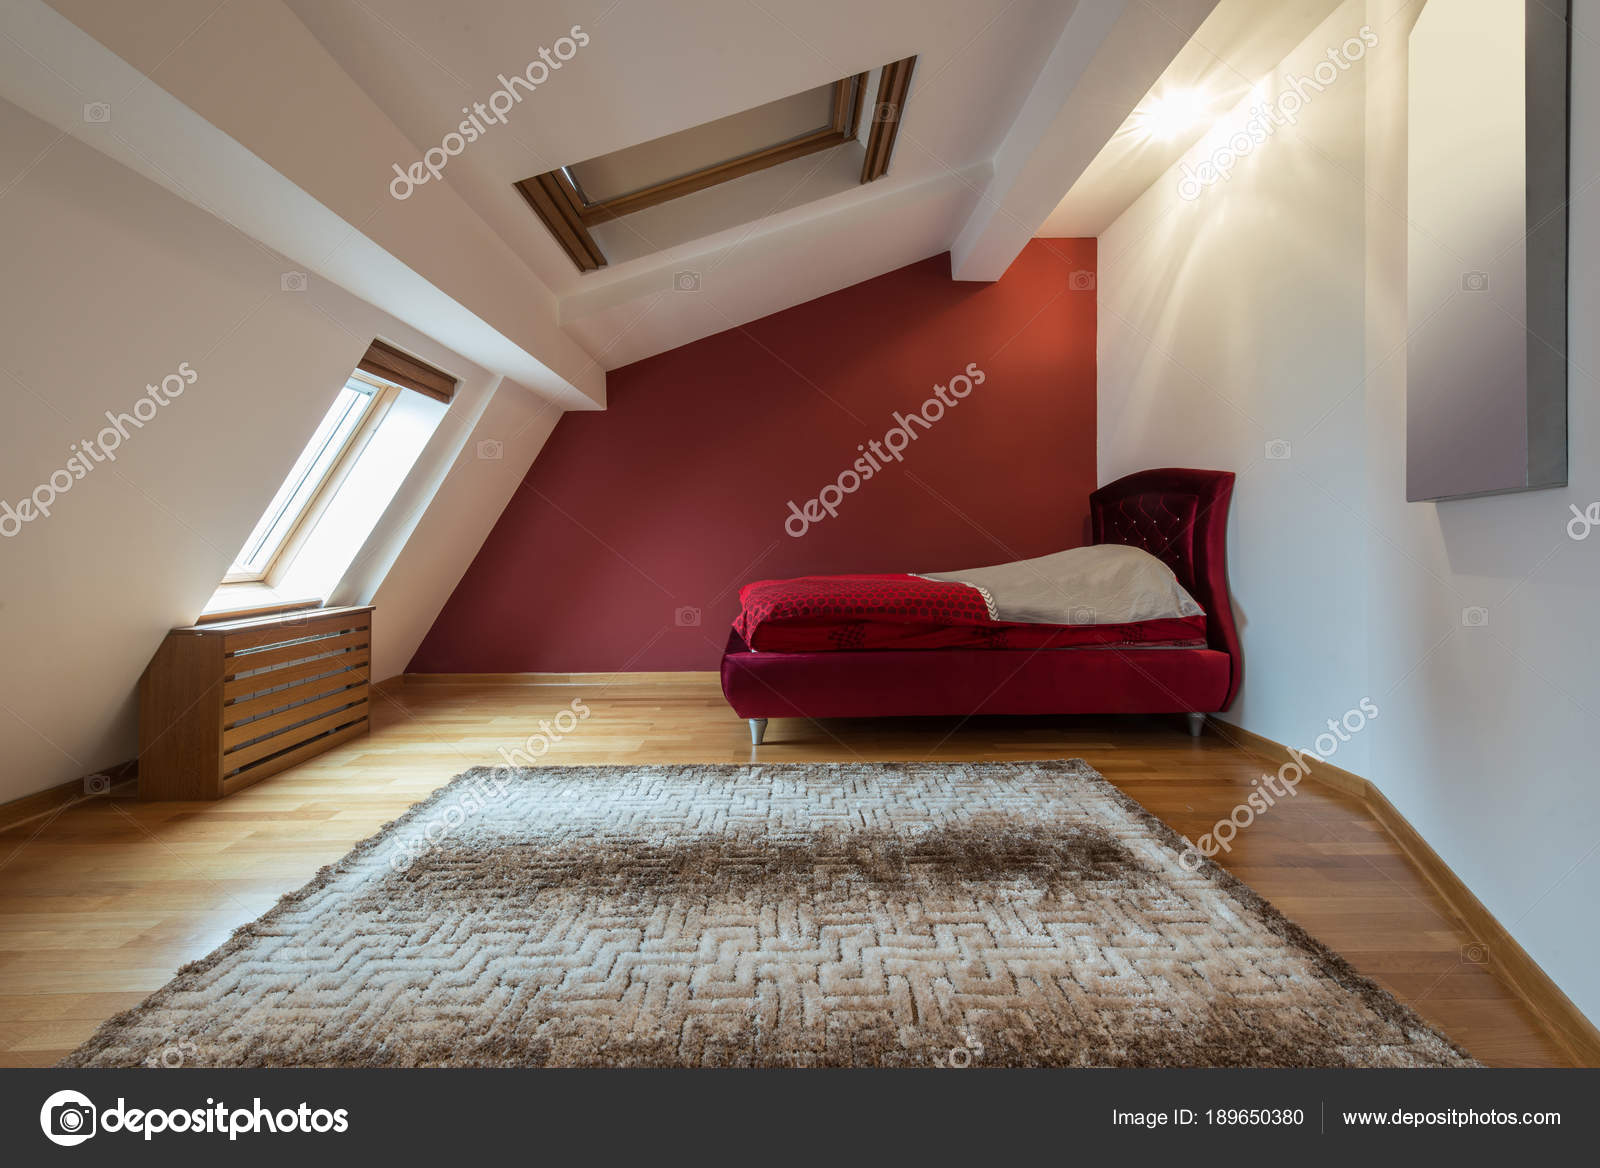 Pop Design For Roof Of Bedroom Bedroom Interior In Luxury Red Loft Attic Apartment With Roof Stock Photo C Dr Interior 189650380